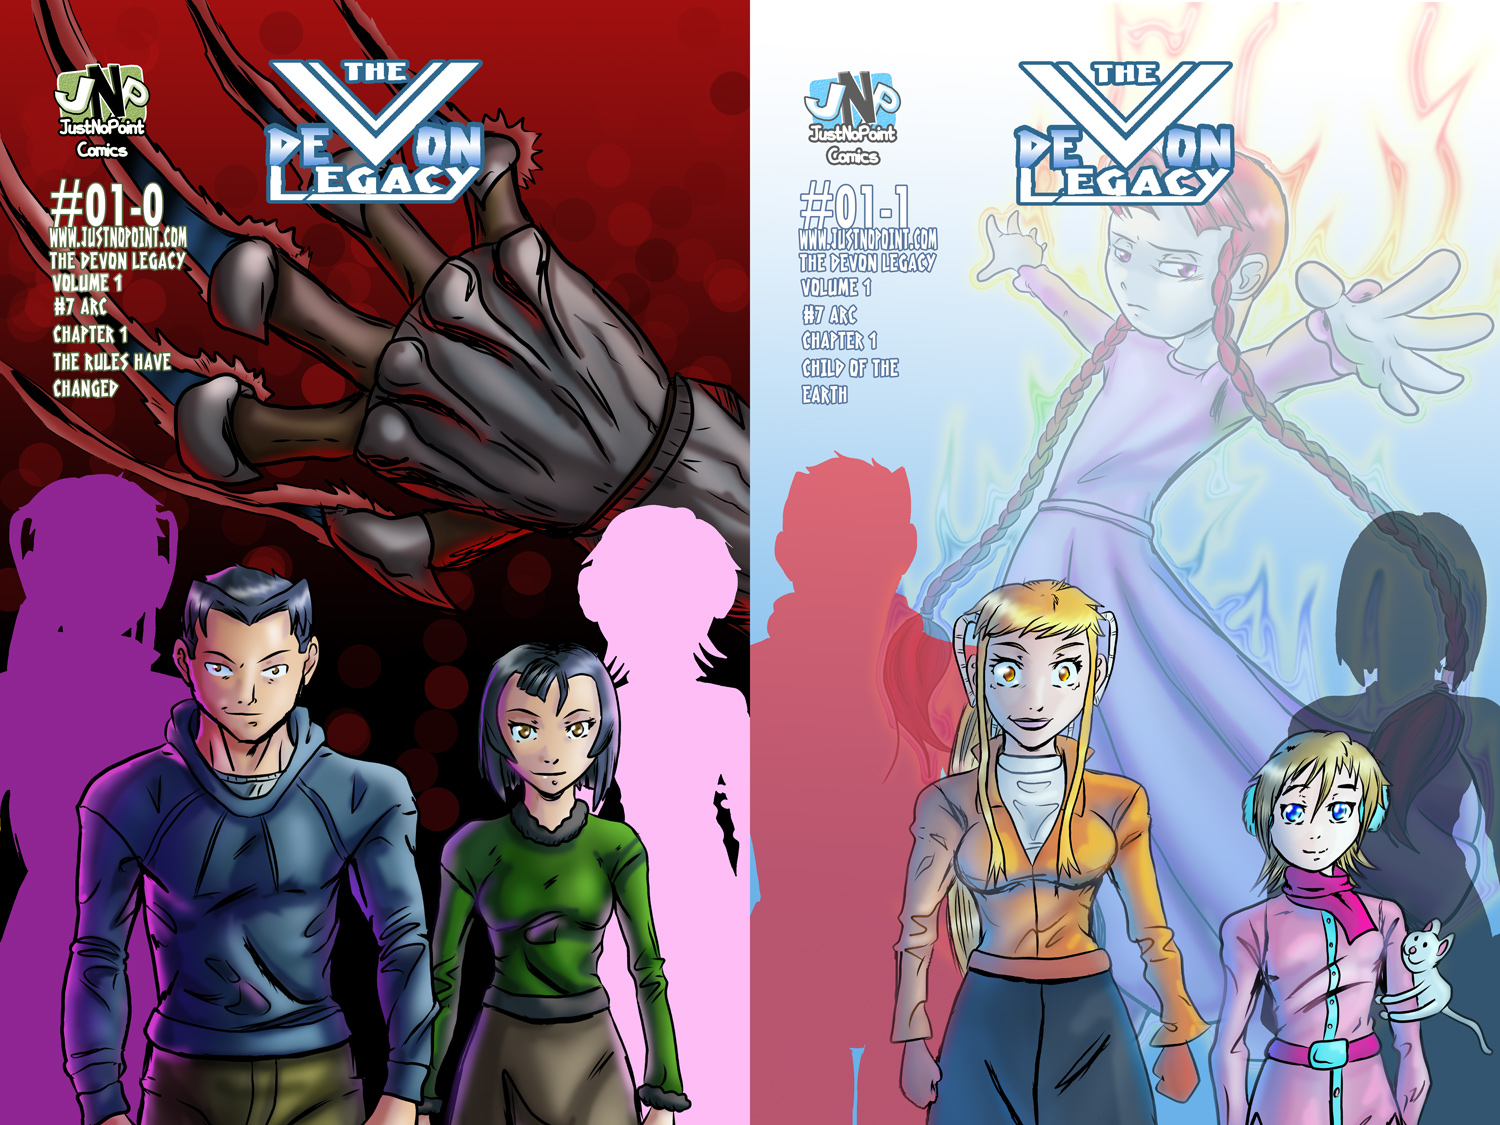 Alternate covers for Issue 1